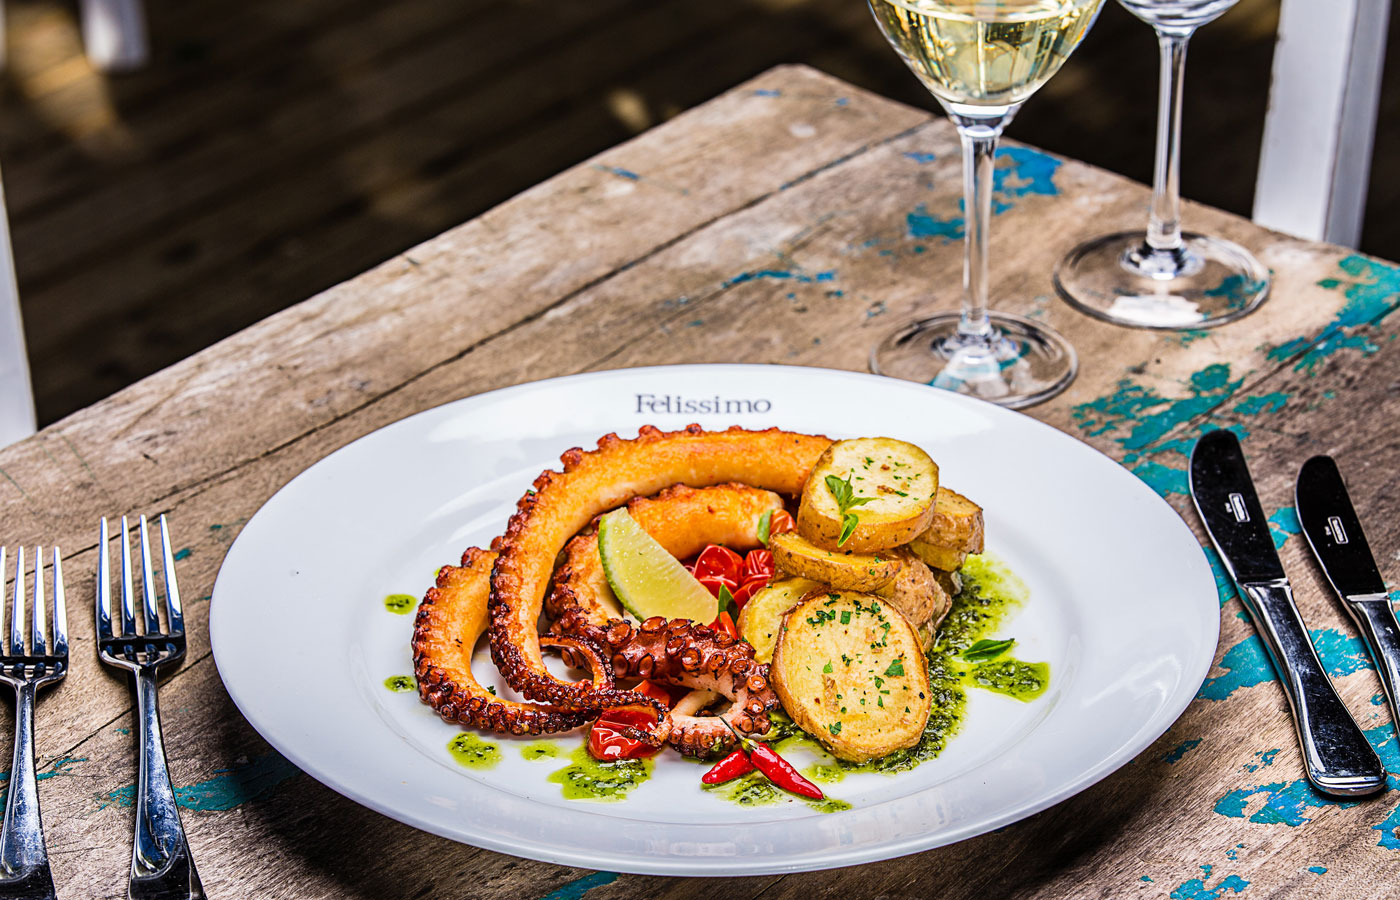 A delicious and sophisticated octopus dish at the award-winning restaurant of Felissimo Exclusive Hotel in Balneario de Camboriu, Brazil